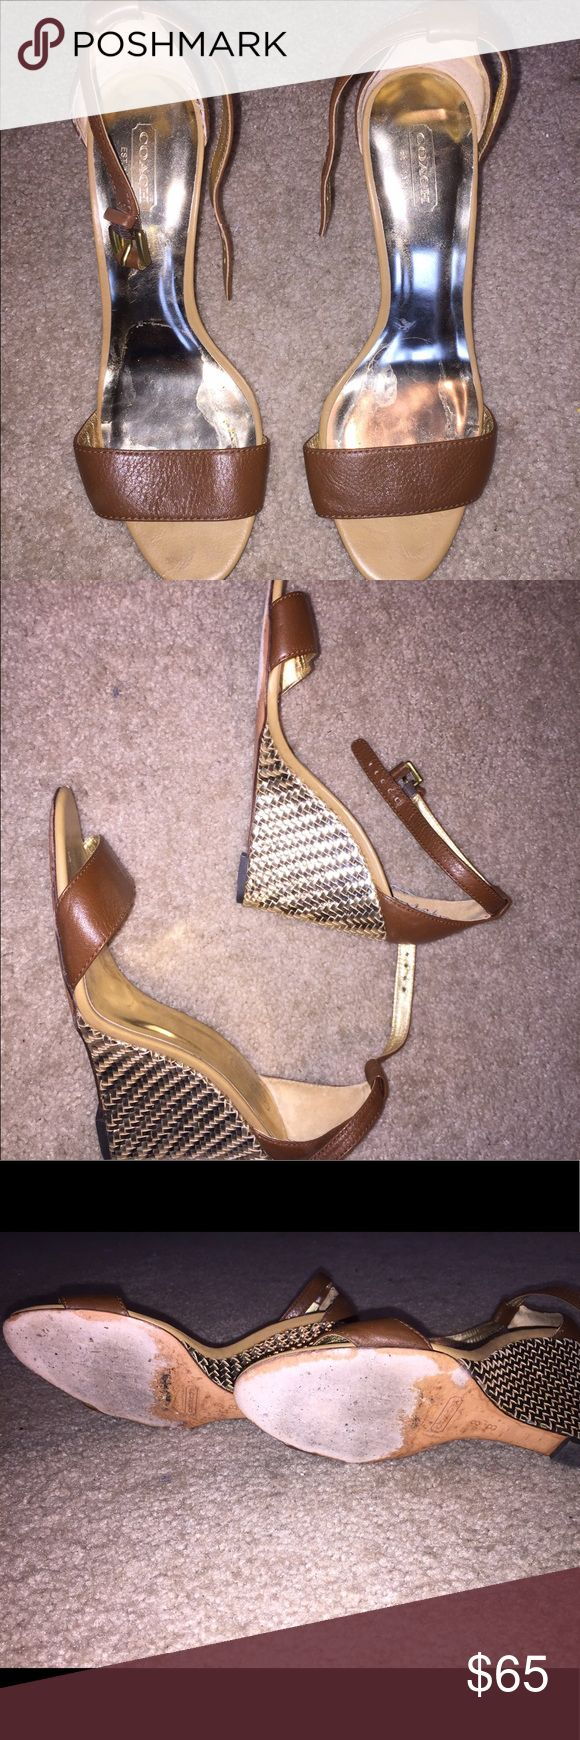 Gold & Brown Coach Wedge Heels Coach wedges - Gold wedge heel with Brown leather. I wore these to prom and to a sorority formal event. They have some wear but are still very cute and wearable. They never fit me quite right - I'm half a size too small. Tags for exposure: Cole Haan, Steve Madden, Jeffery Campbell, Sam Edelman Coach Shoes Heels